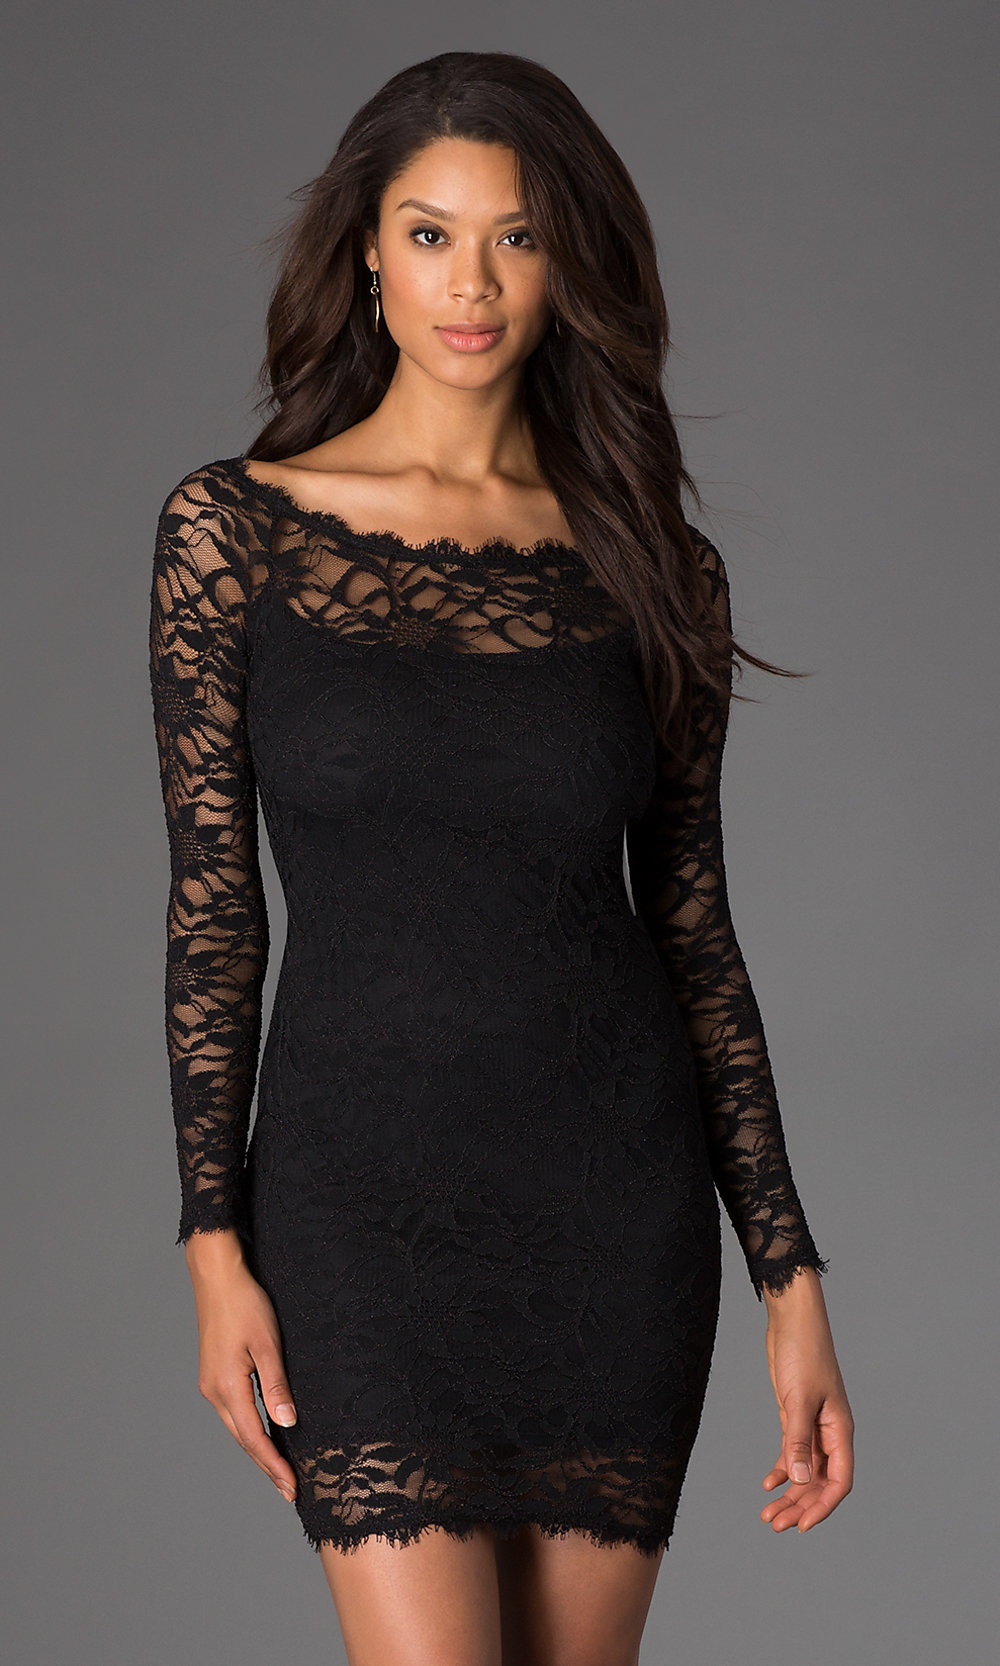 Short Black Lace Dress, Long Sleeve Dress by Jump